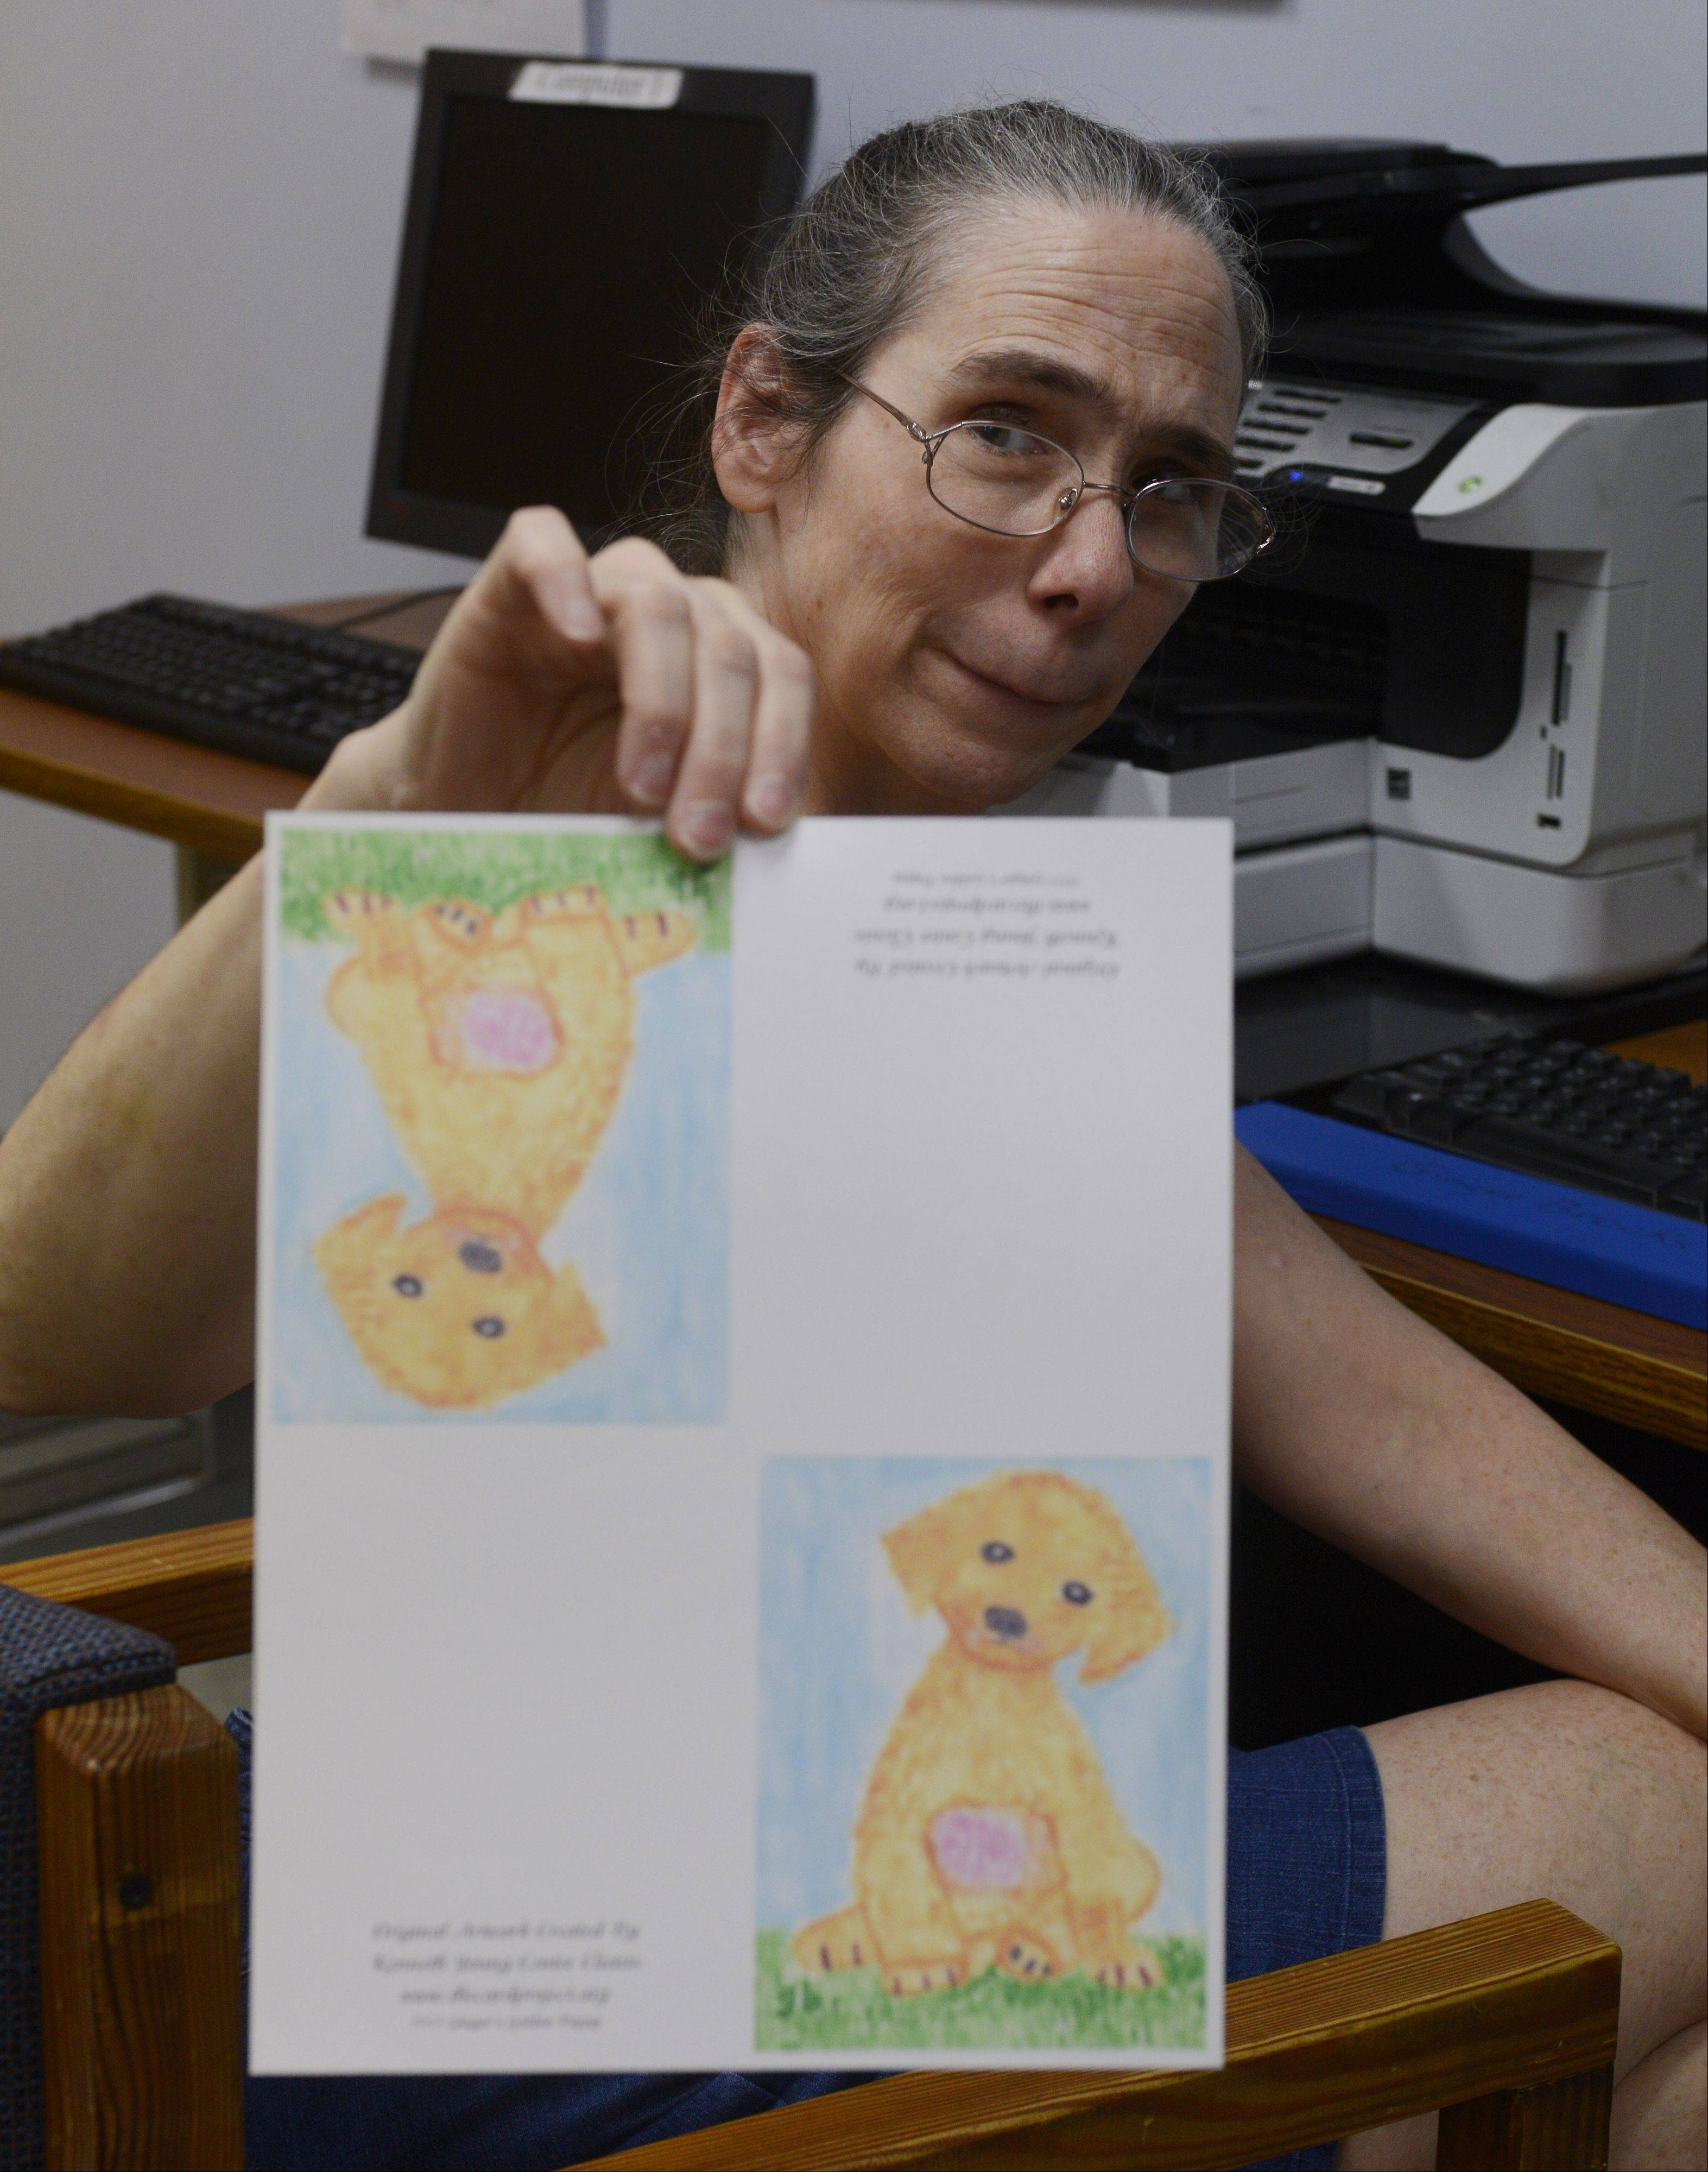 Fresh from the printer, this greeting card sporting a feel-good puppy now needs to be cut and folded, says Michelle Layfield, president of The Card Project at the Kenneth Young Center in Elk Grove Village. Layfield credits the card project for her recovery from mental illness.